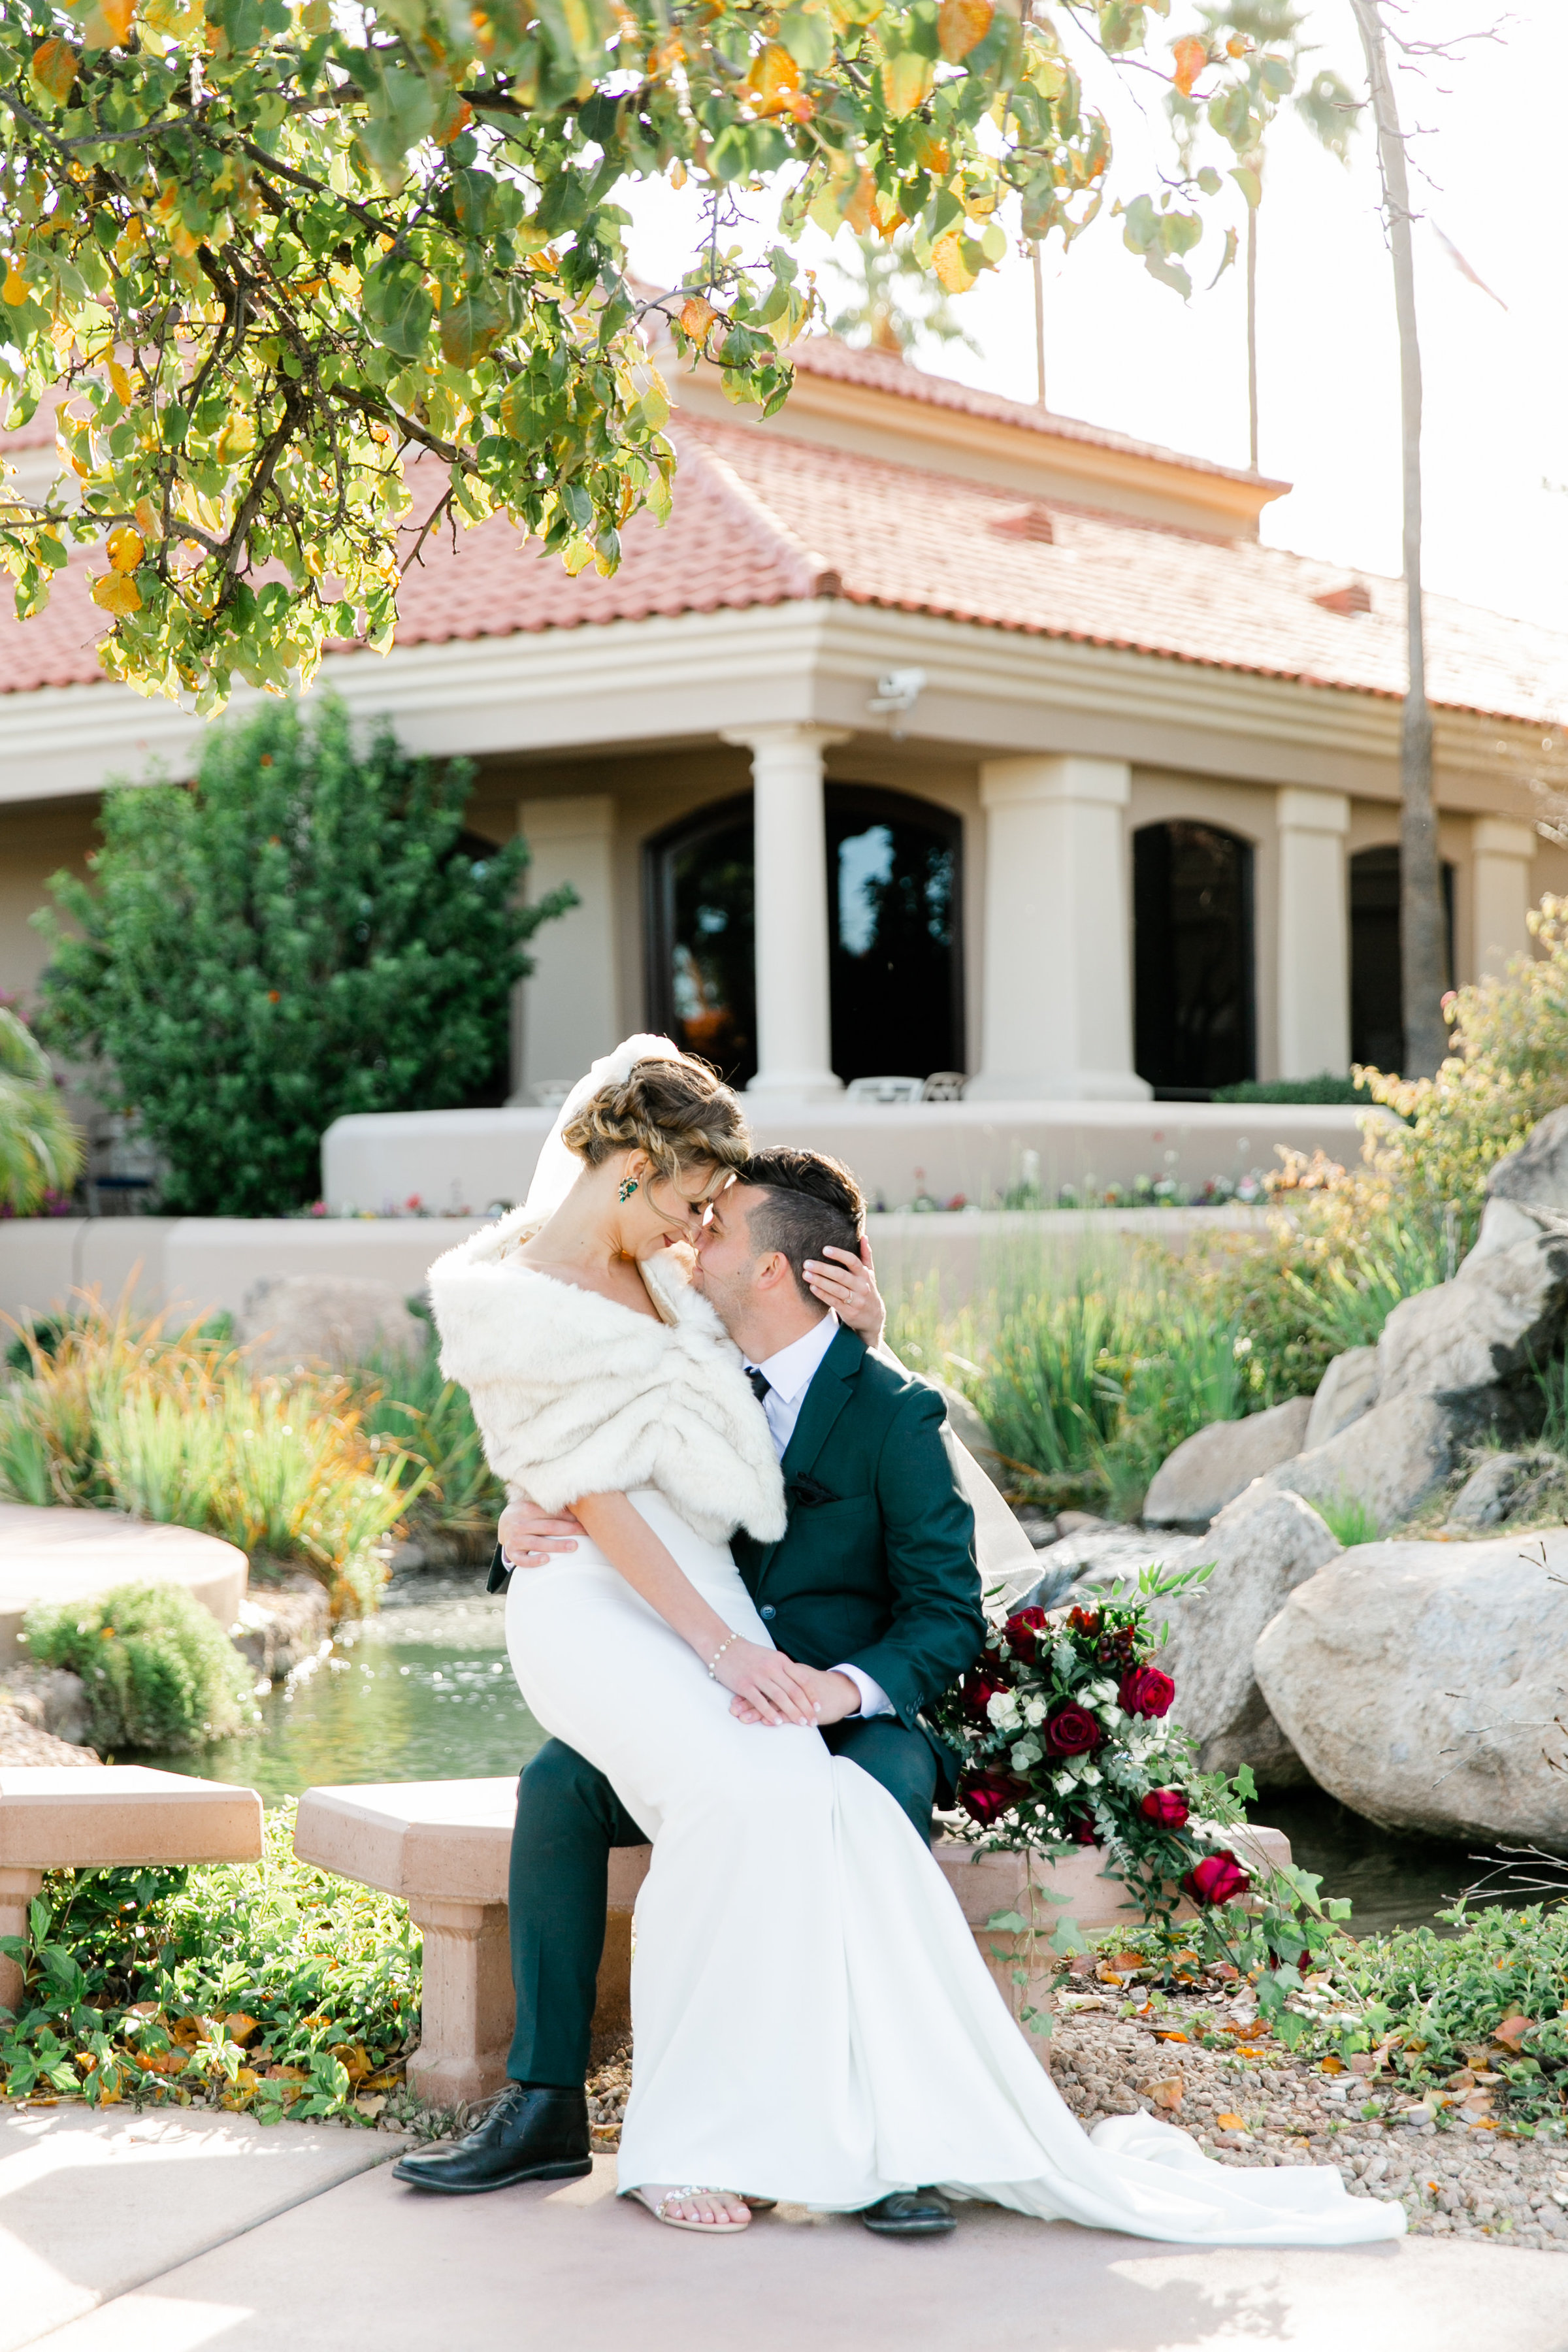 Karlie Colleen Photography - Gilbert Arizona Wedding - Val Vista Lakes - Brynne & Josh-448